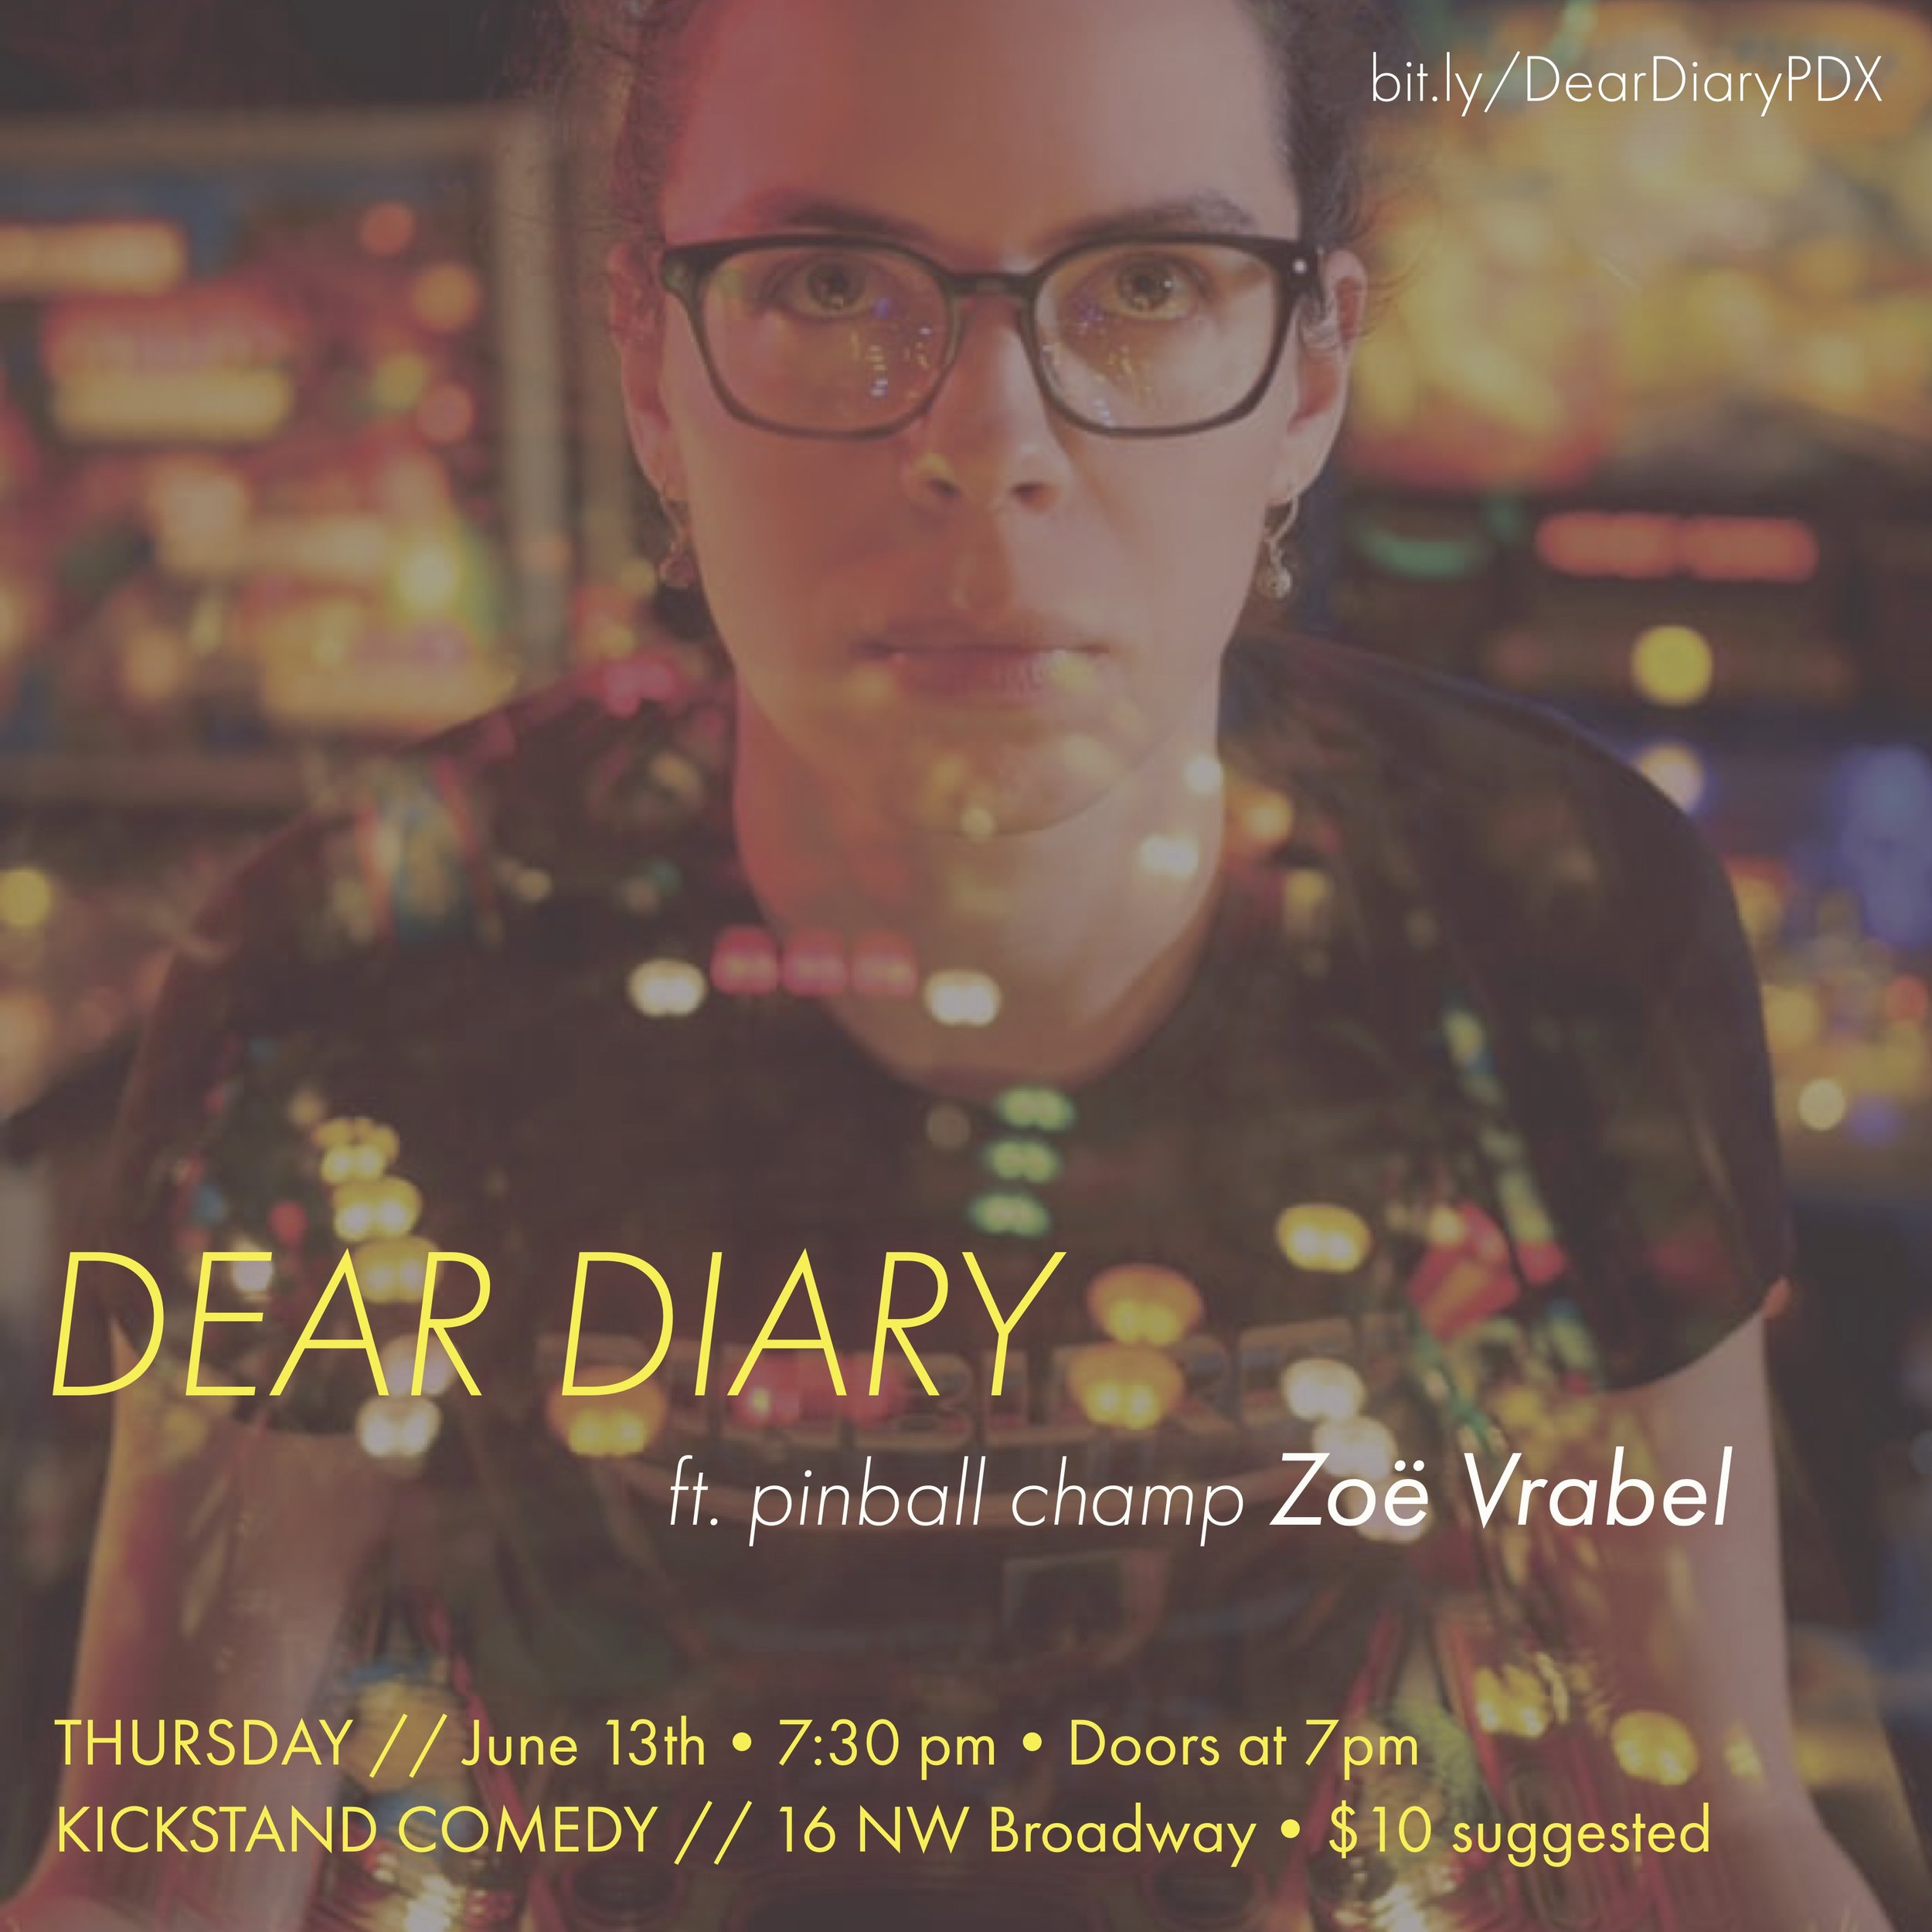 Dear Diary Digital Card_Zoe Vrabel.jpg